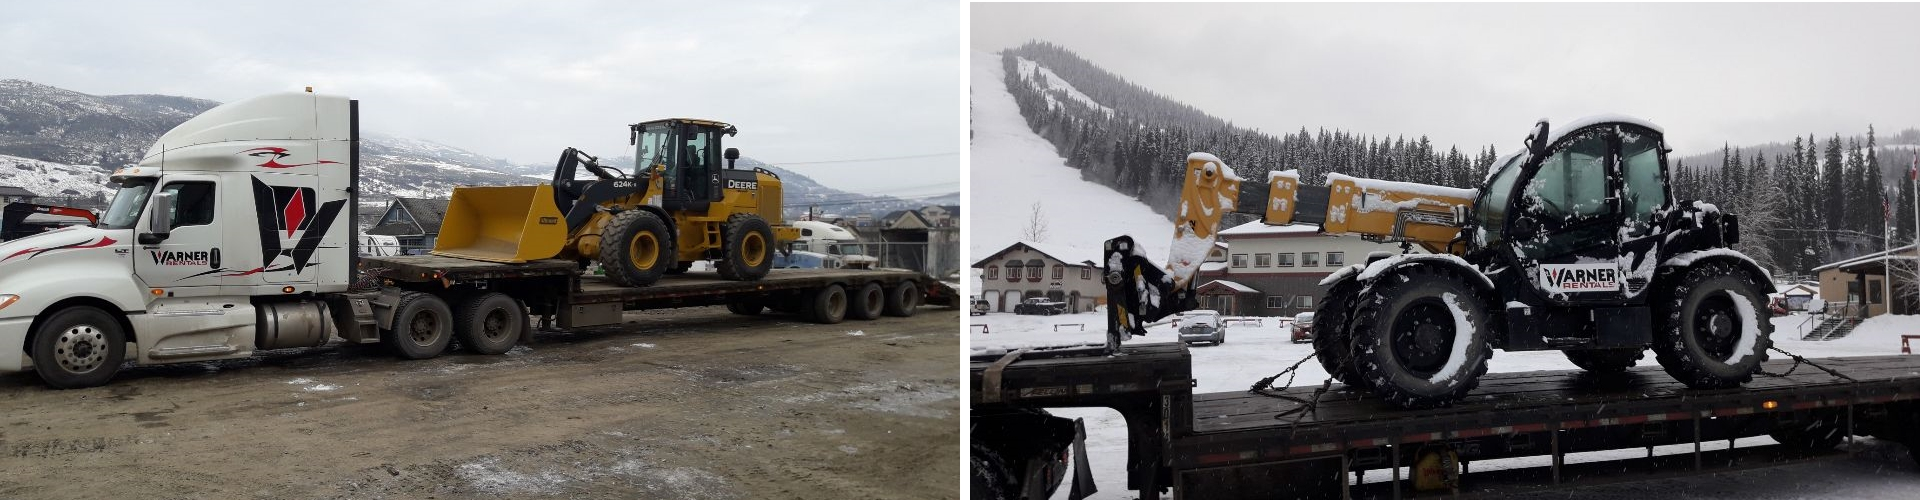 Construction Equipment Rentals in Kamloops